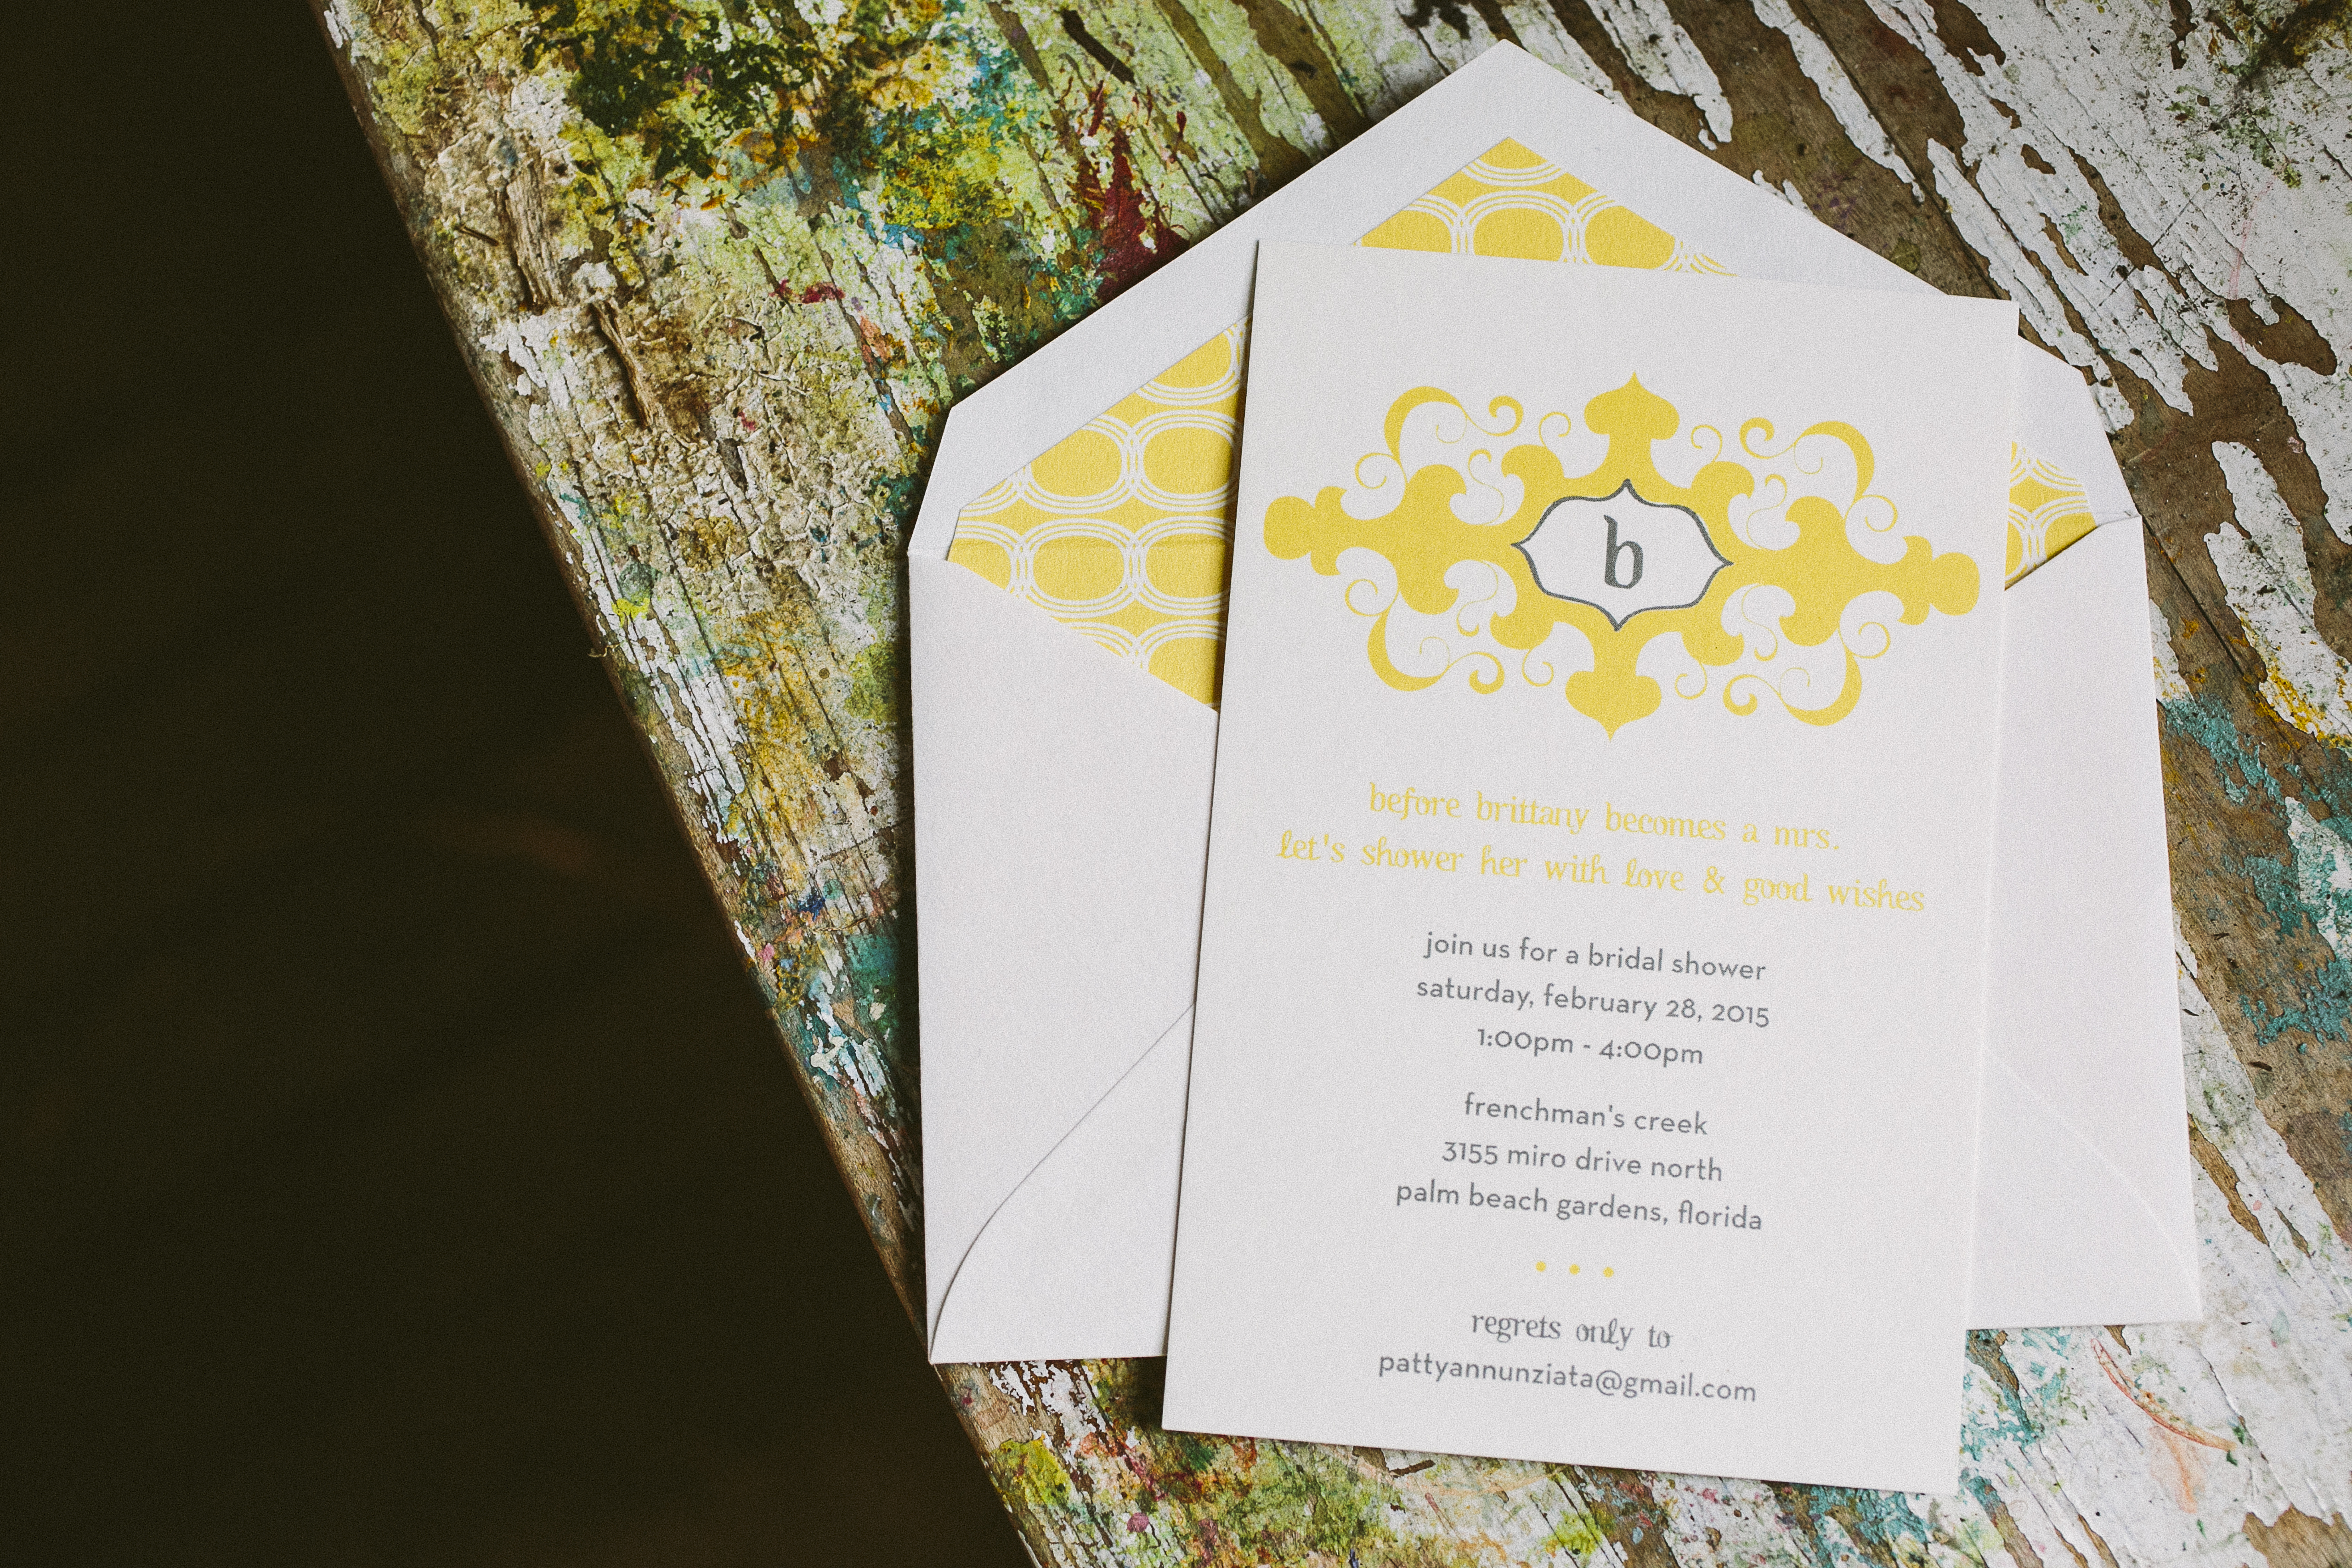 Modern bridal shower invitations from Smock